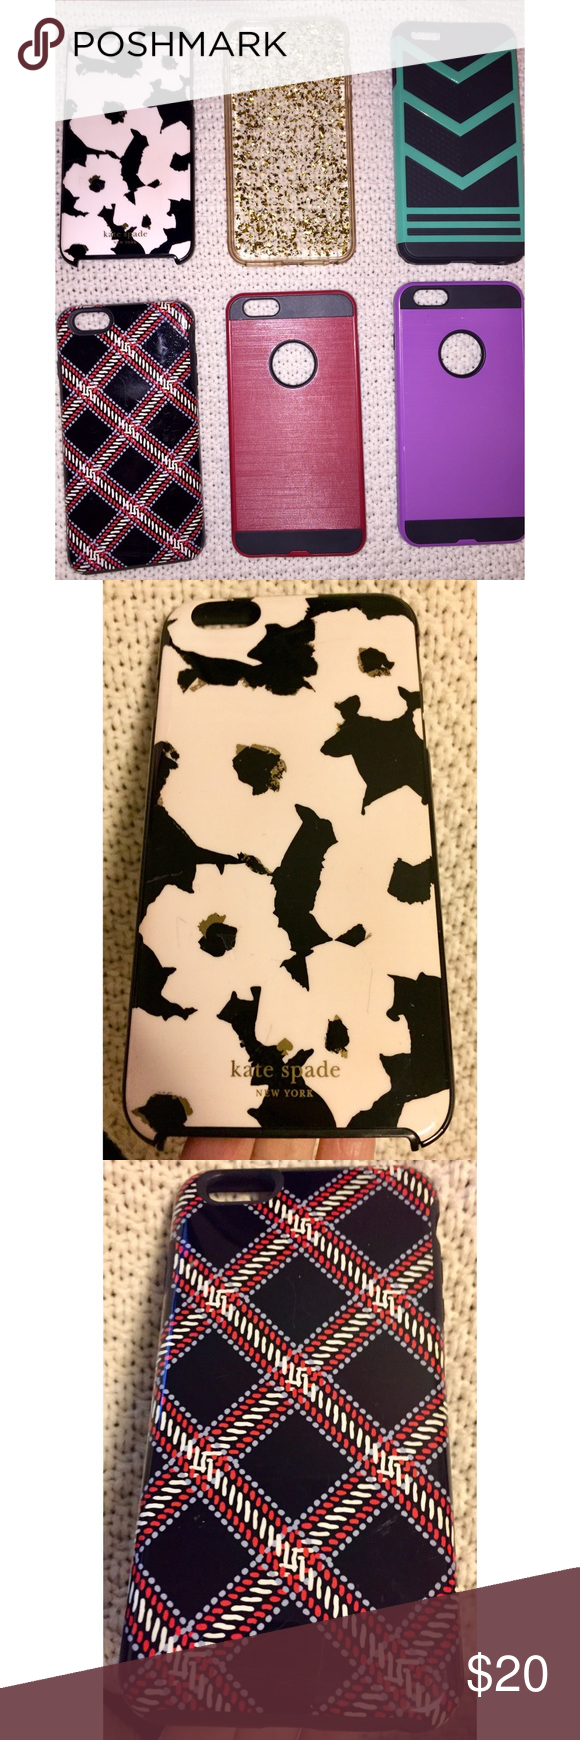 Kate Spade, Vera Bradley+ 4 for iPhone 6+ Lot of 6 Kate Spade, Vera Bradley + 4 cases all for iPhone 6+   This is for a Lot of 6 iPhone cases.   ***Moving and trying to scale down and de-clutter***  Pre-owned; Gently used cases  Included cases:  Kate Spade - flowers Vera Bradley - plaid Clear case with gold flakes Red w/blk Purple w/blk Blk/Aqua  If you have any questions, please let me know.  Don't like the price, please make me a reasonable offer.  Thanks for stopping by and visiting my clos #katespadewallpaper